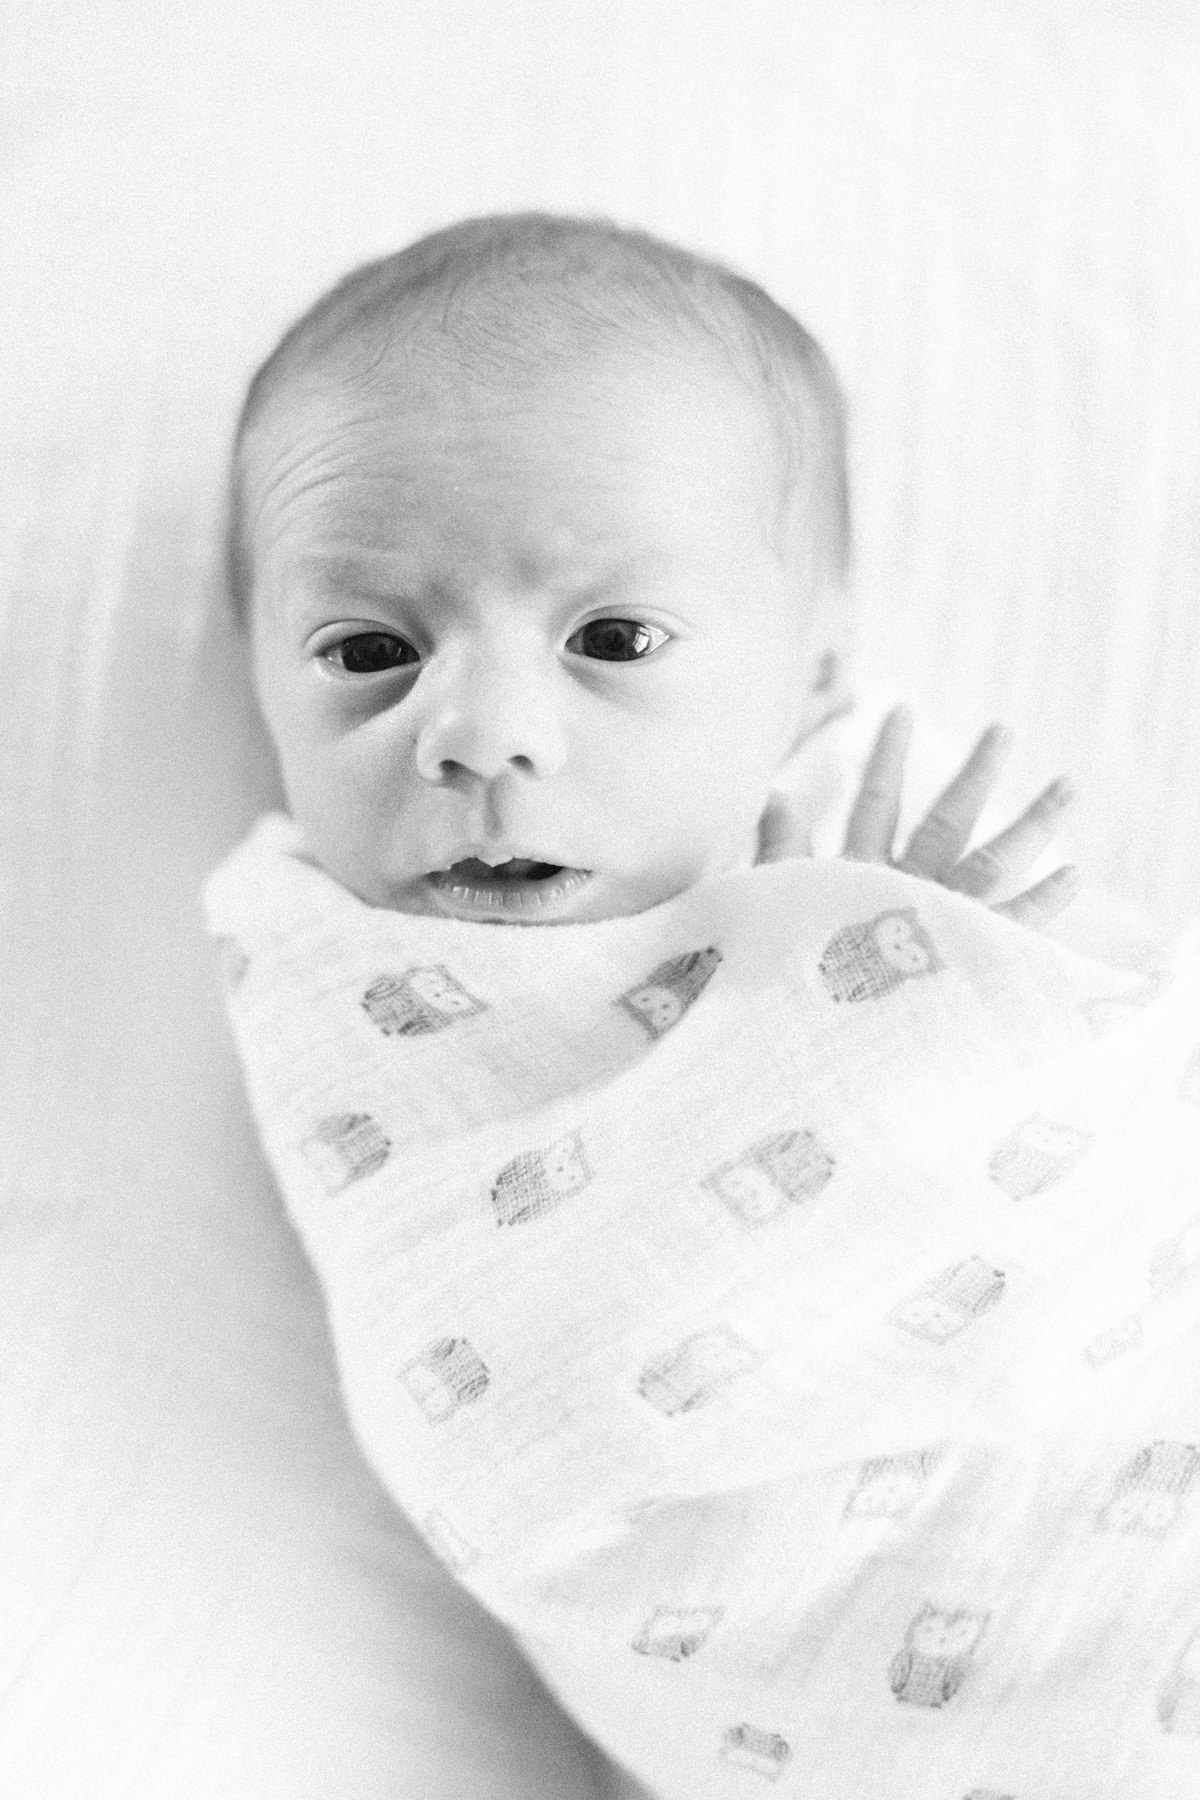 001_Everett2016Mar12BW.jpg